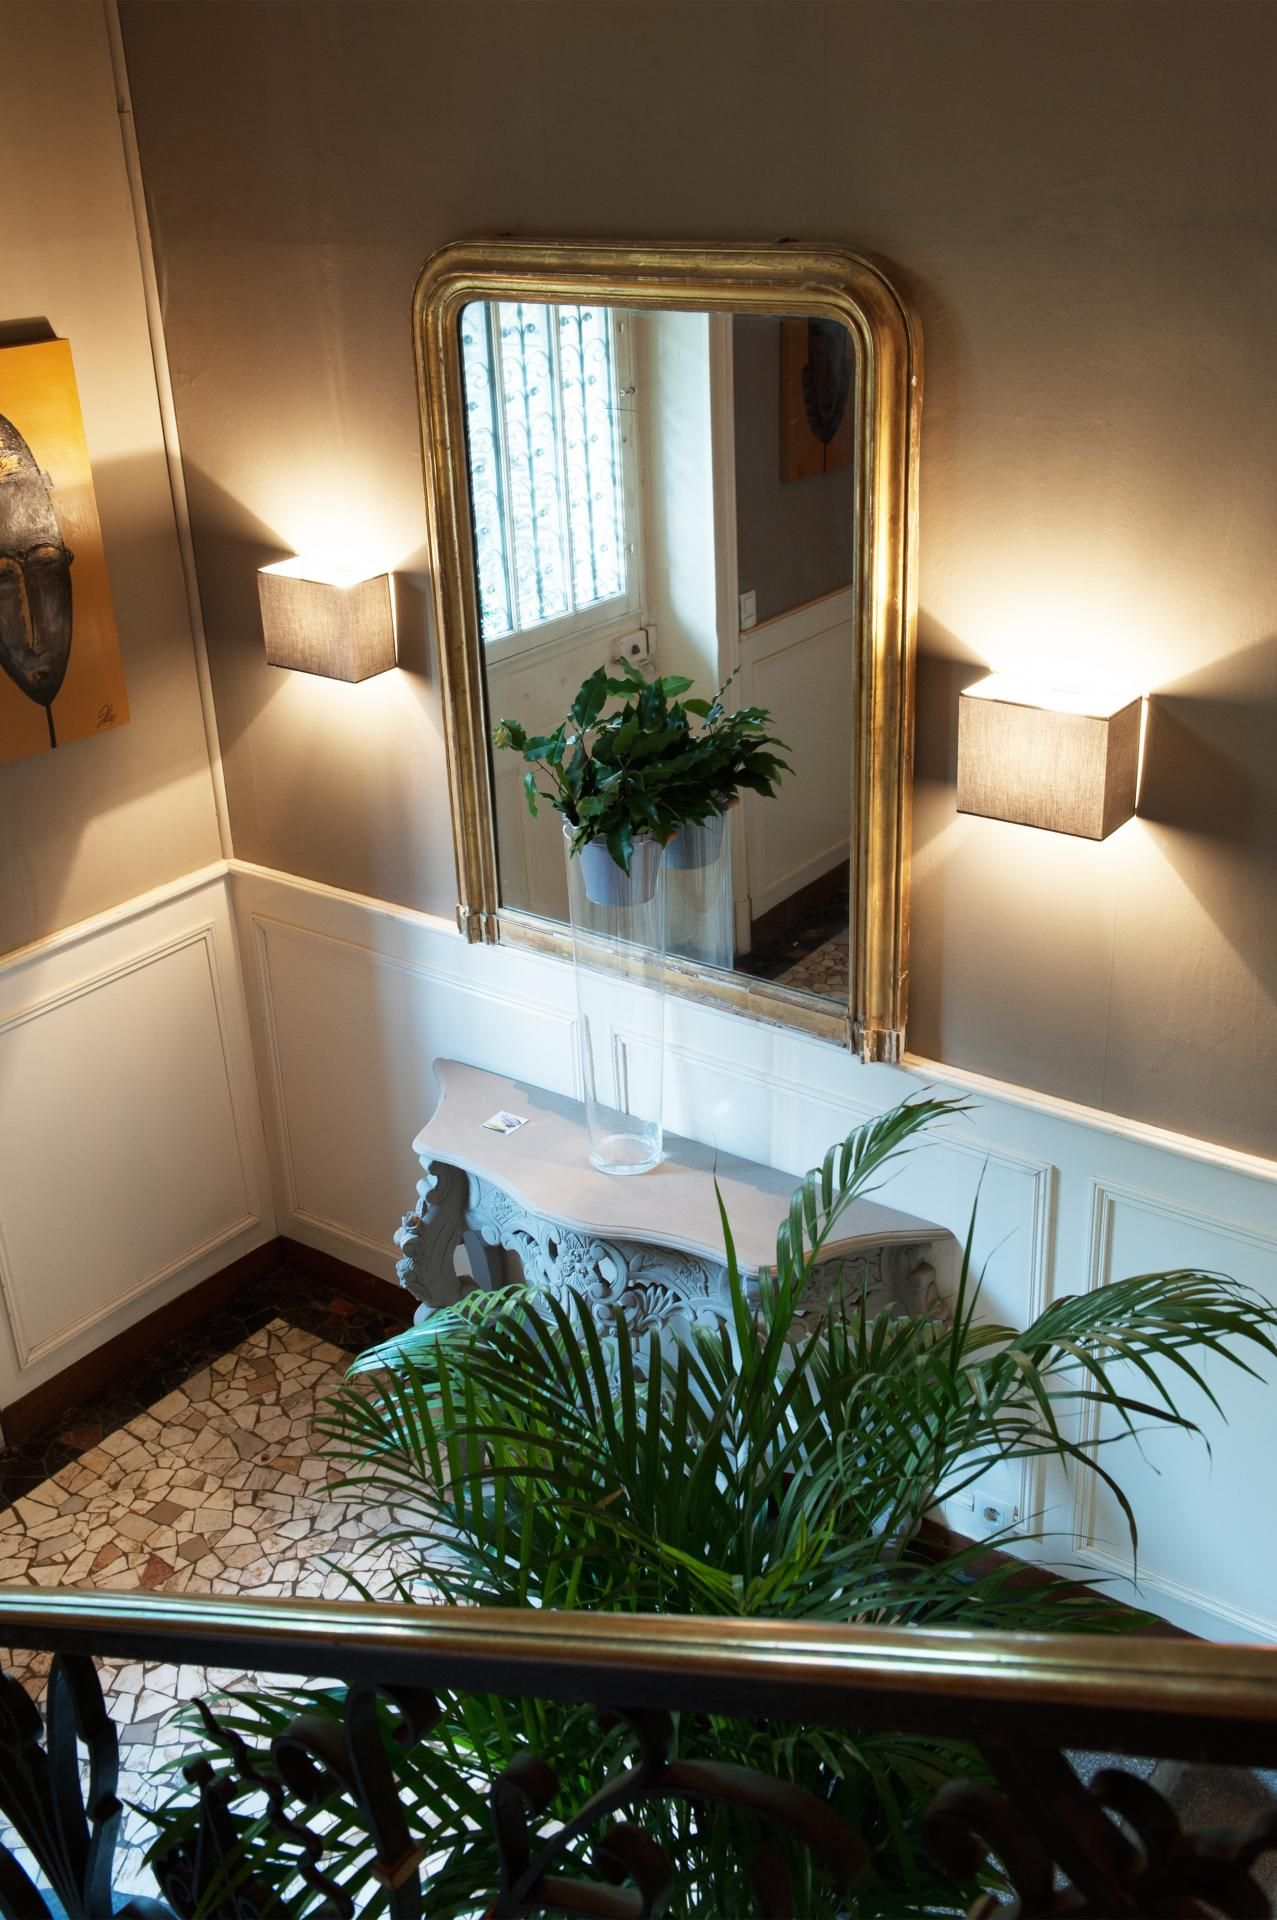 Room 1dufy hotel particulier chambre d hote bretagne - Chambre d hote piscine bretagne ...